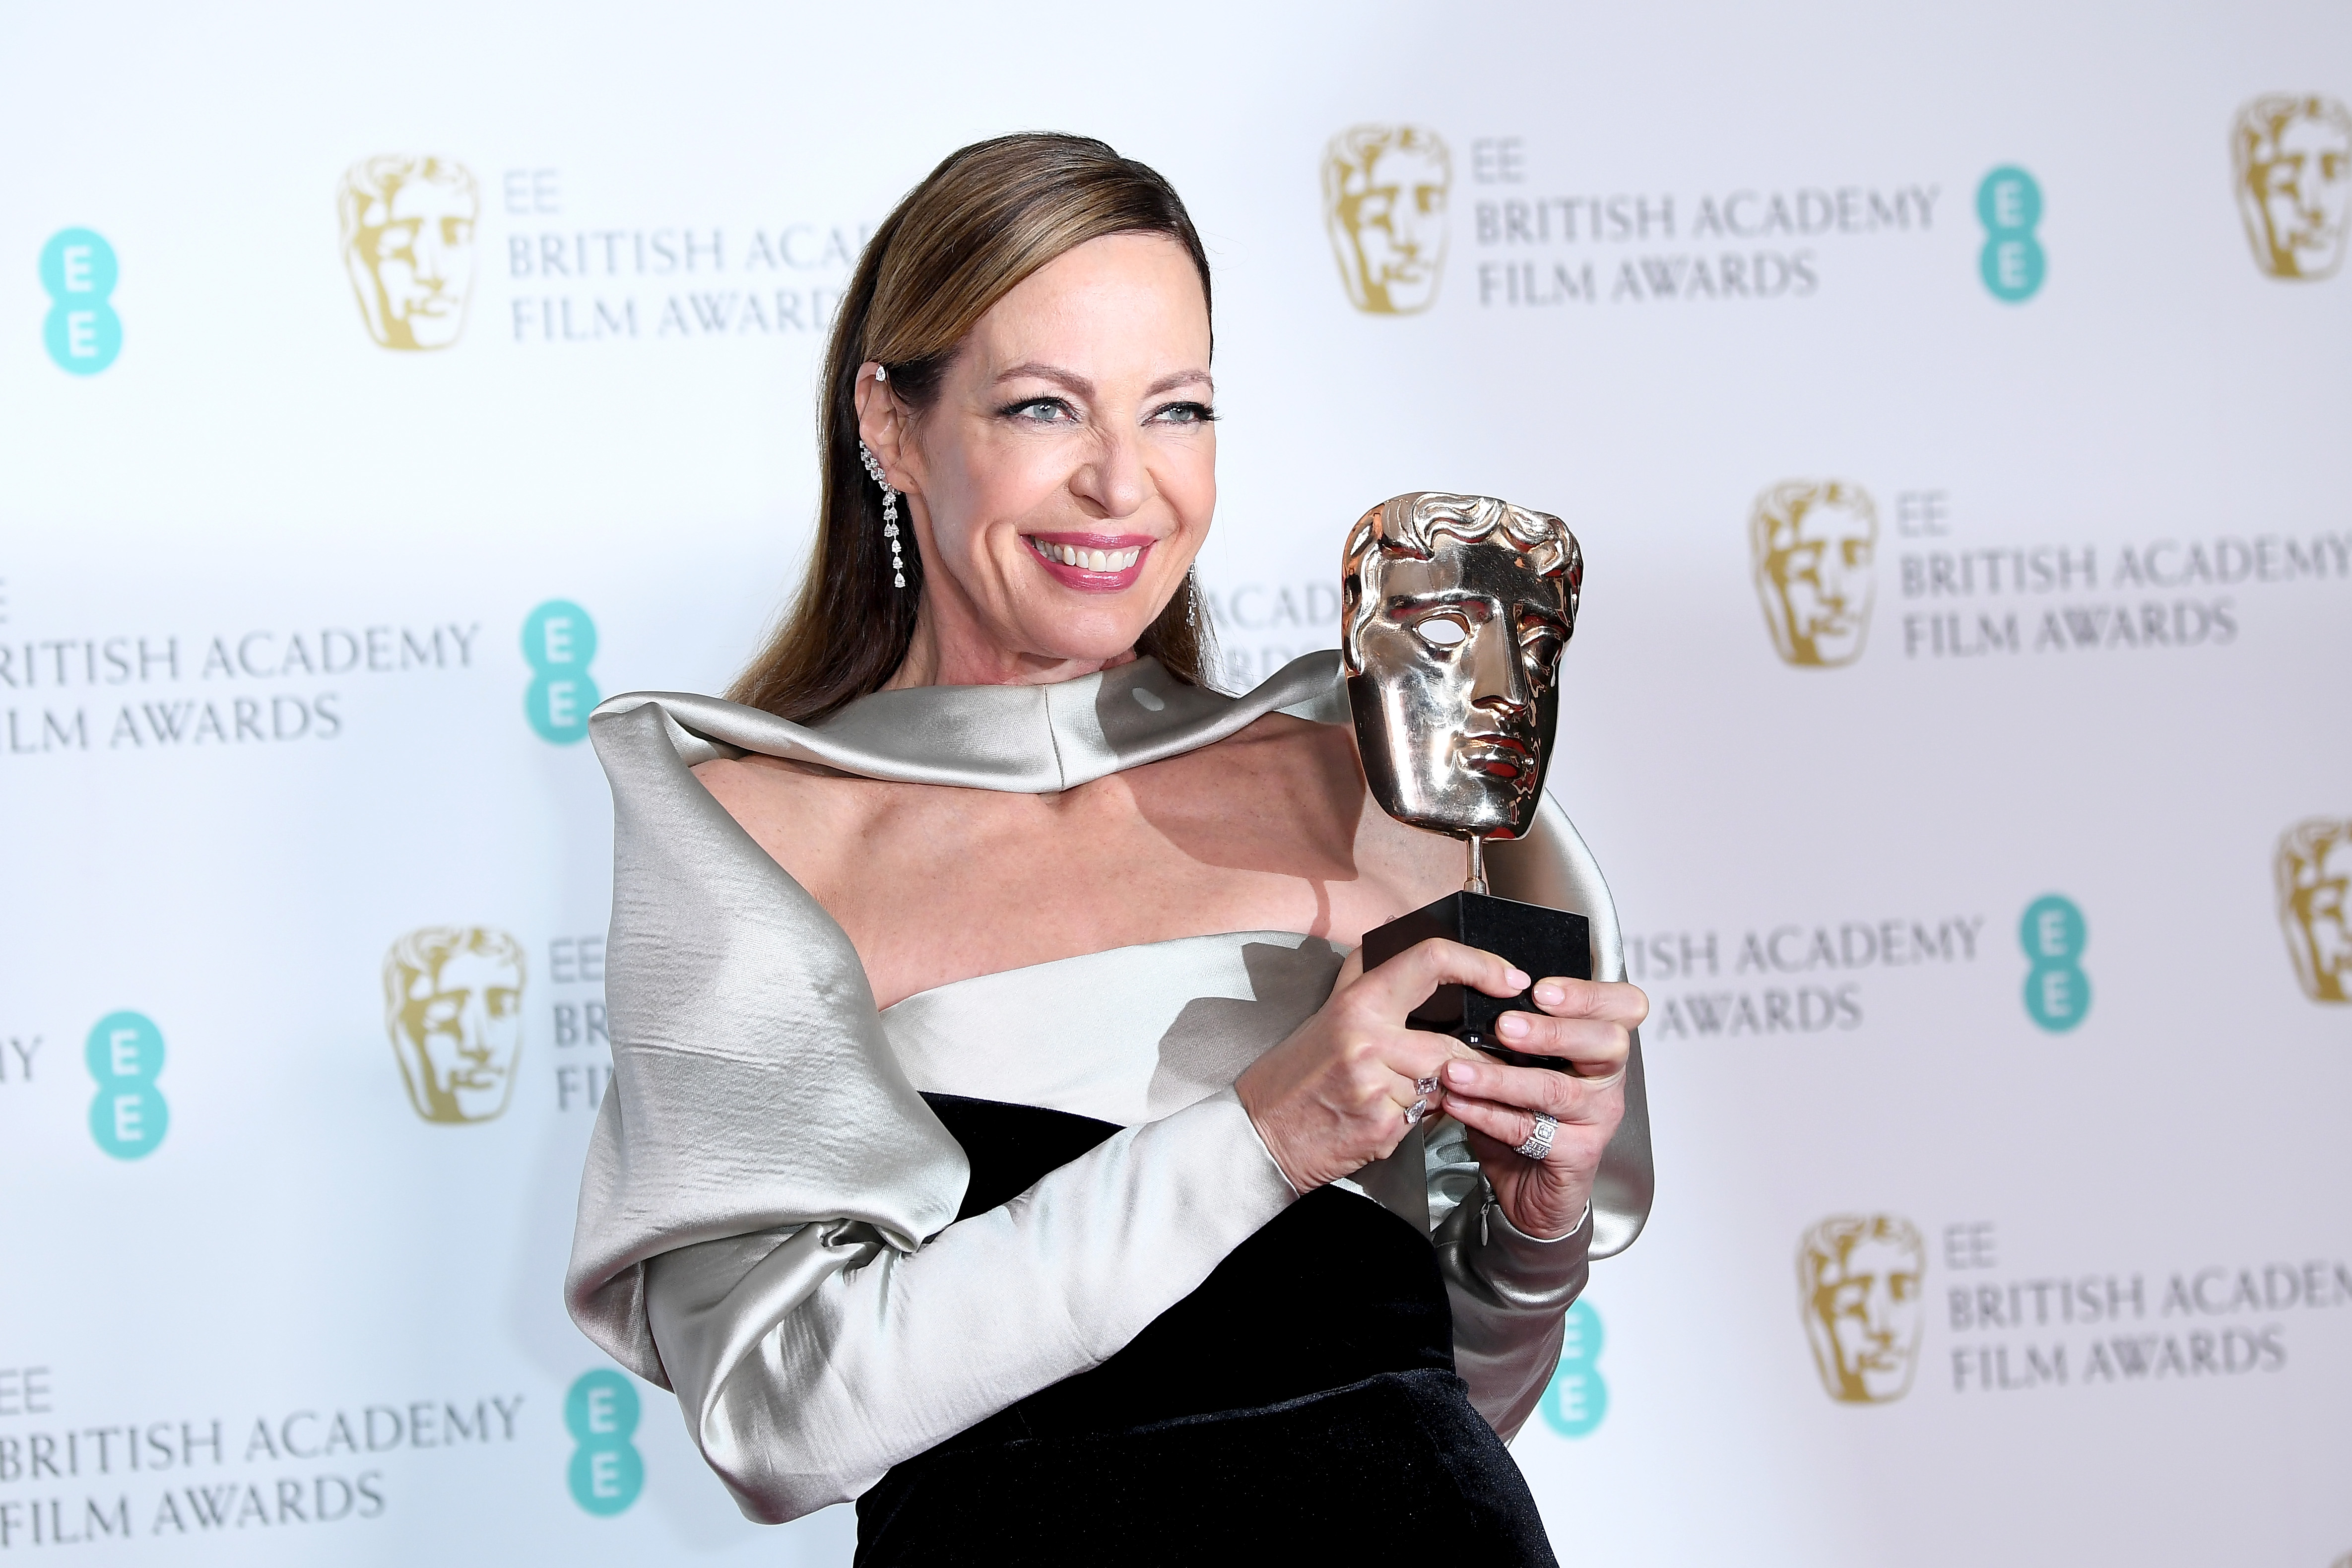 Allison-Janneys-Performance-In-I-Tonya-Earned-Her-A-Best-Supporting-Actress-BAFTA-Award